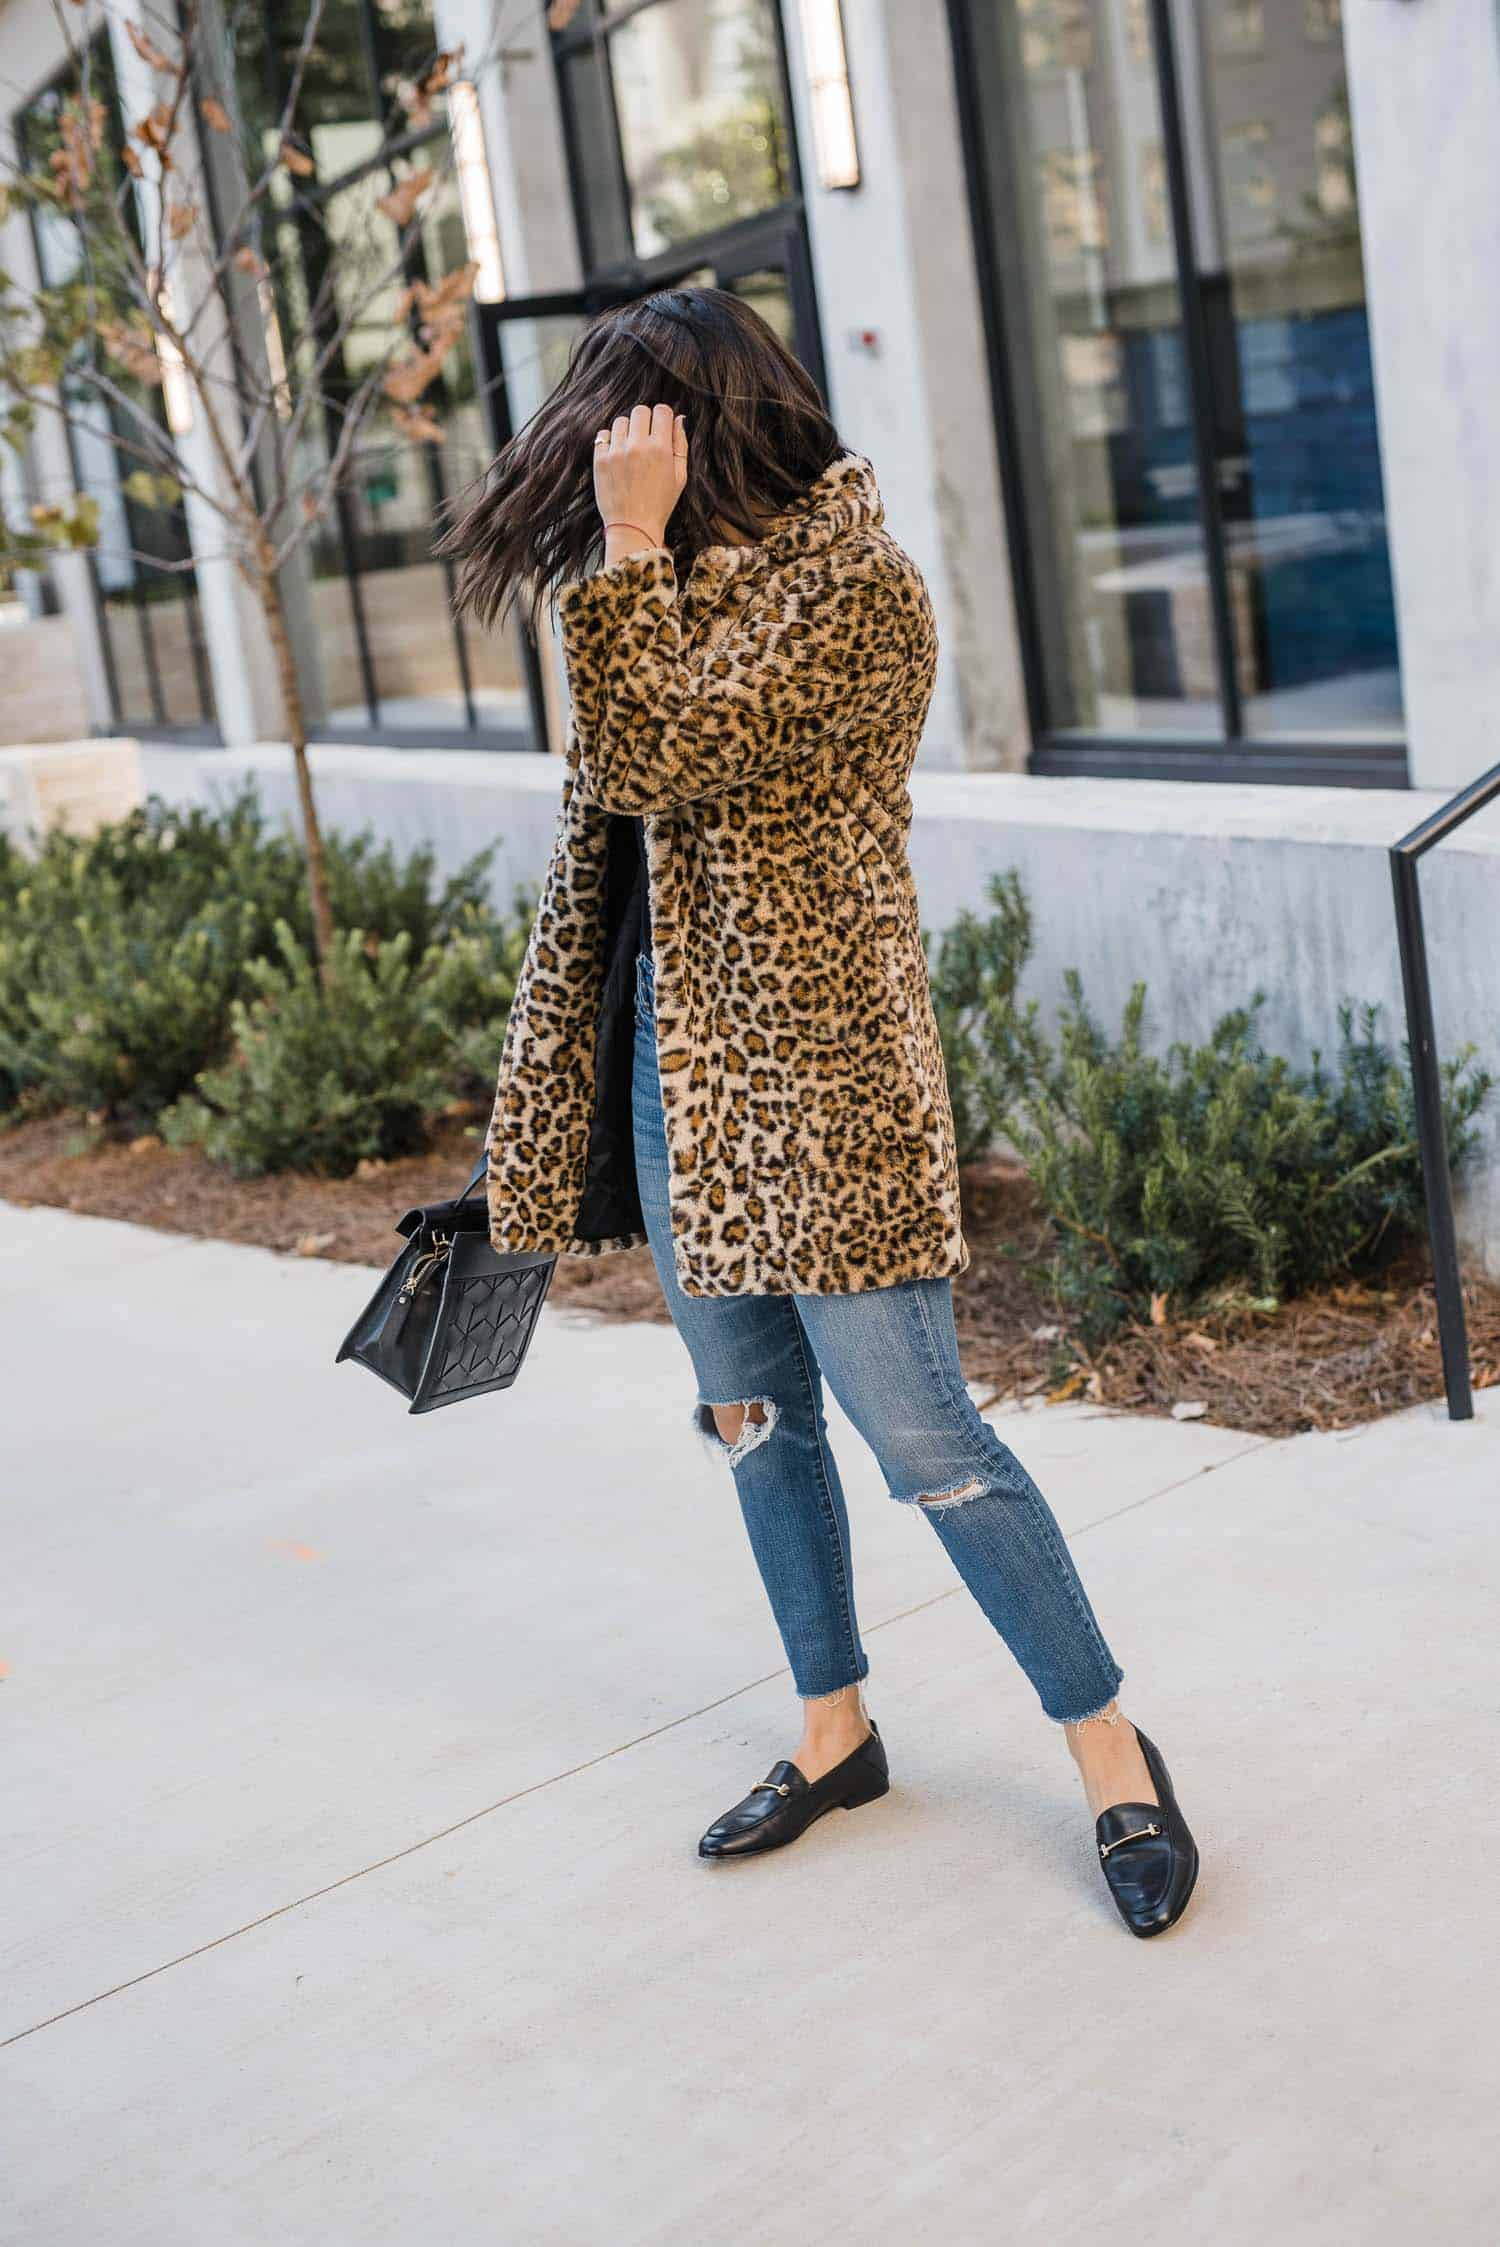 The Best Faux Fur Coats Under $200